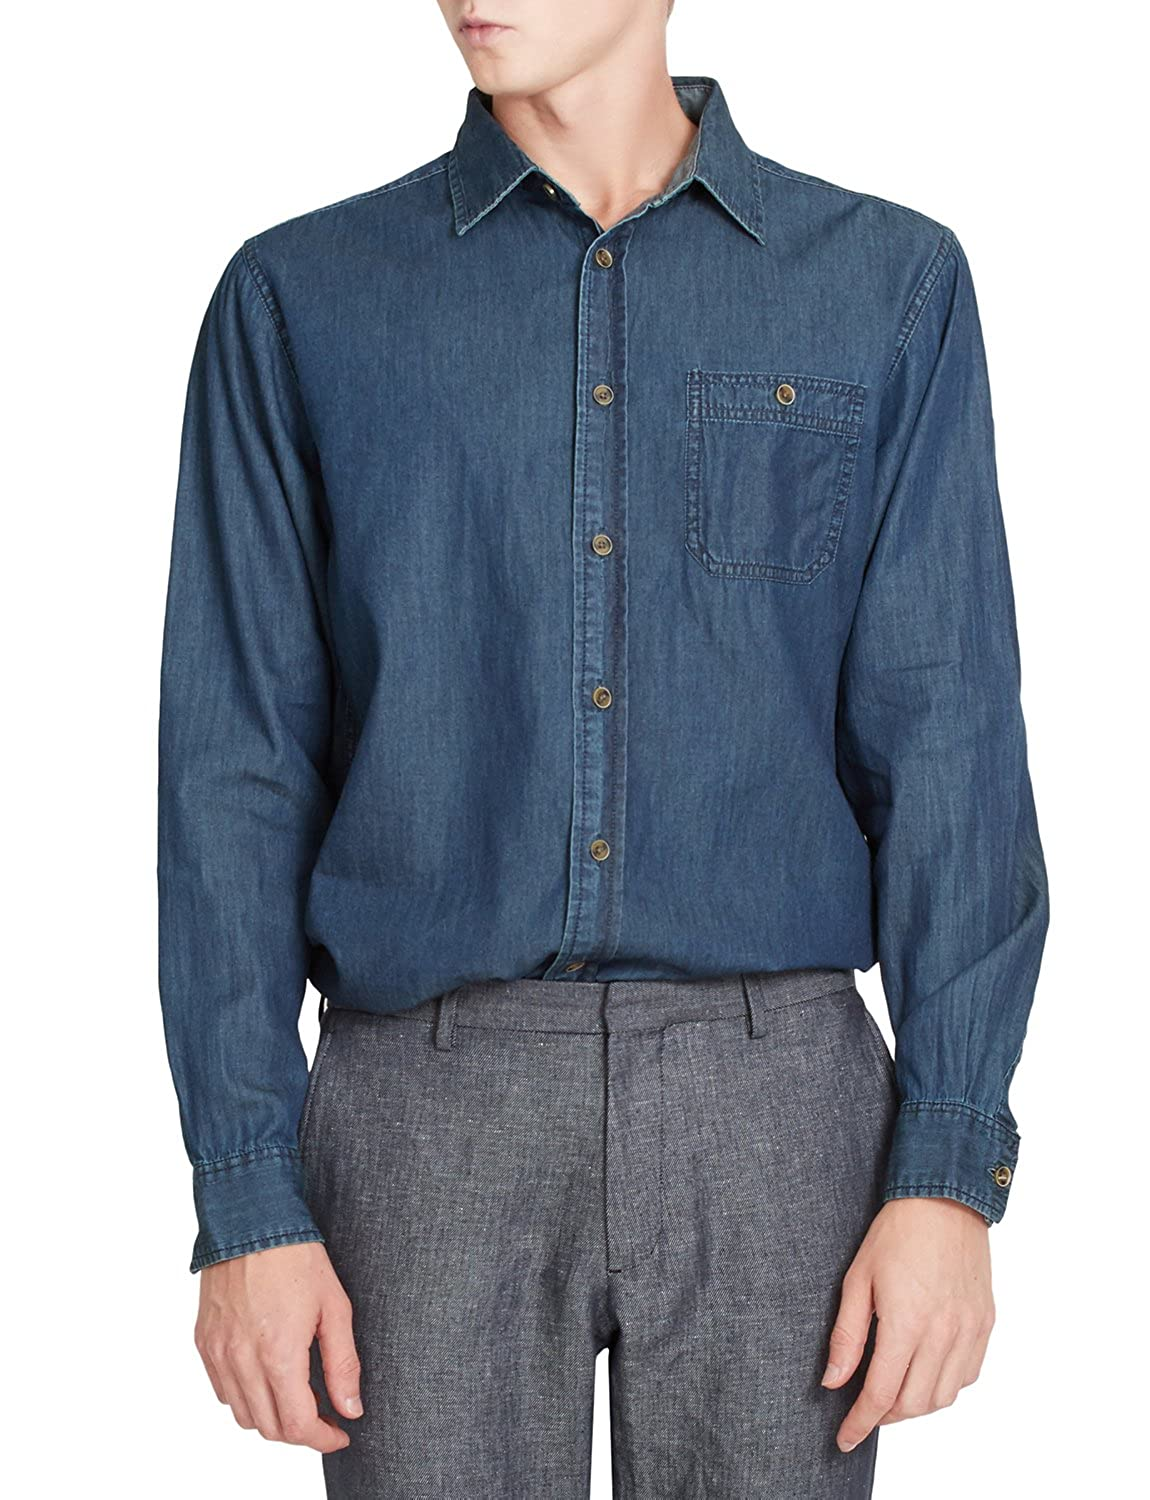 New 1940's Style Zoot Suits for Sale LE3NO PREMIUM Mens Vintage Long Sleeve Button Down Work Denim Shirt $43.54 AT vintagedancer.com